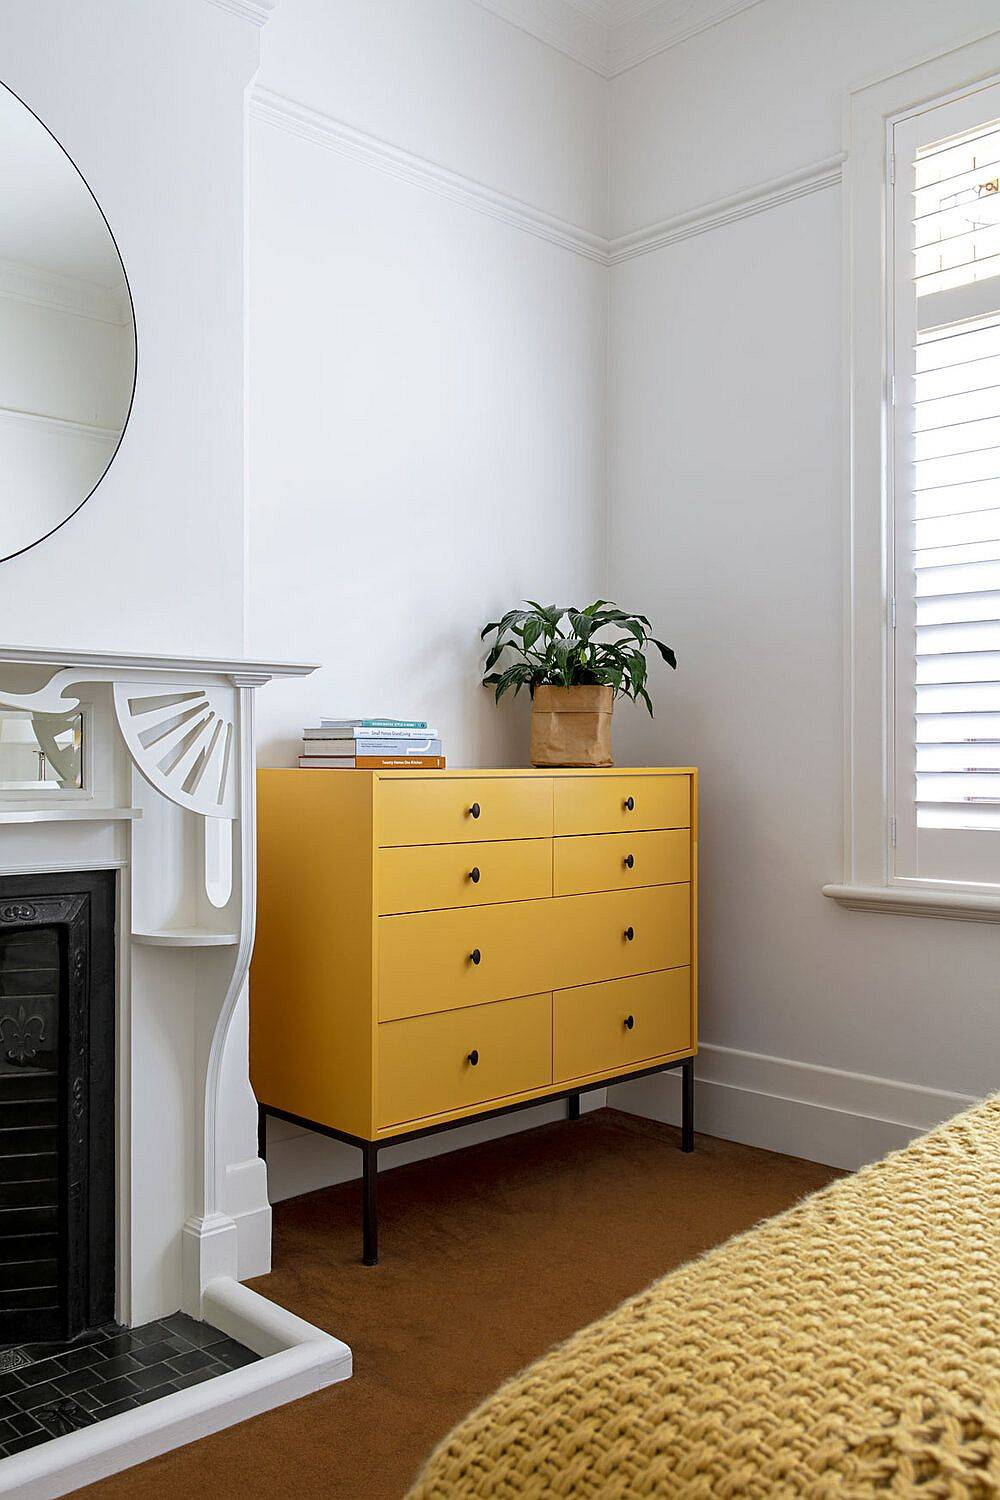 Gorgeous-orange-drawer-in-the-bedroom-adds-color-to-the-white-transitional-bedroom-89751